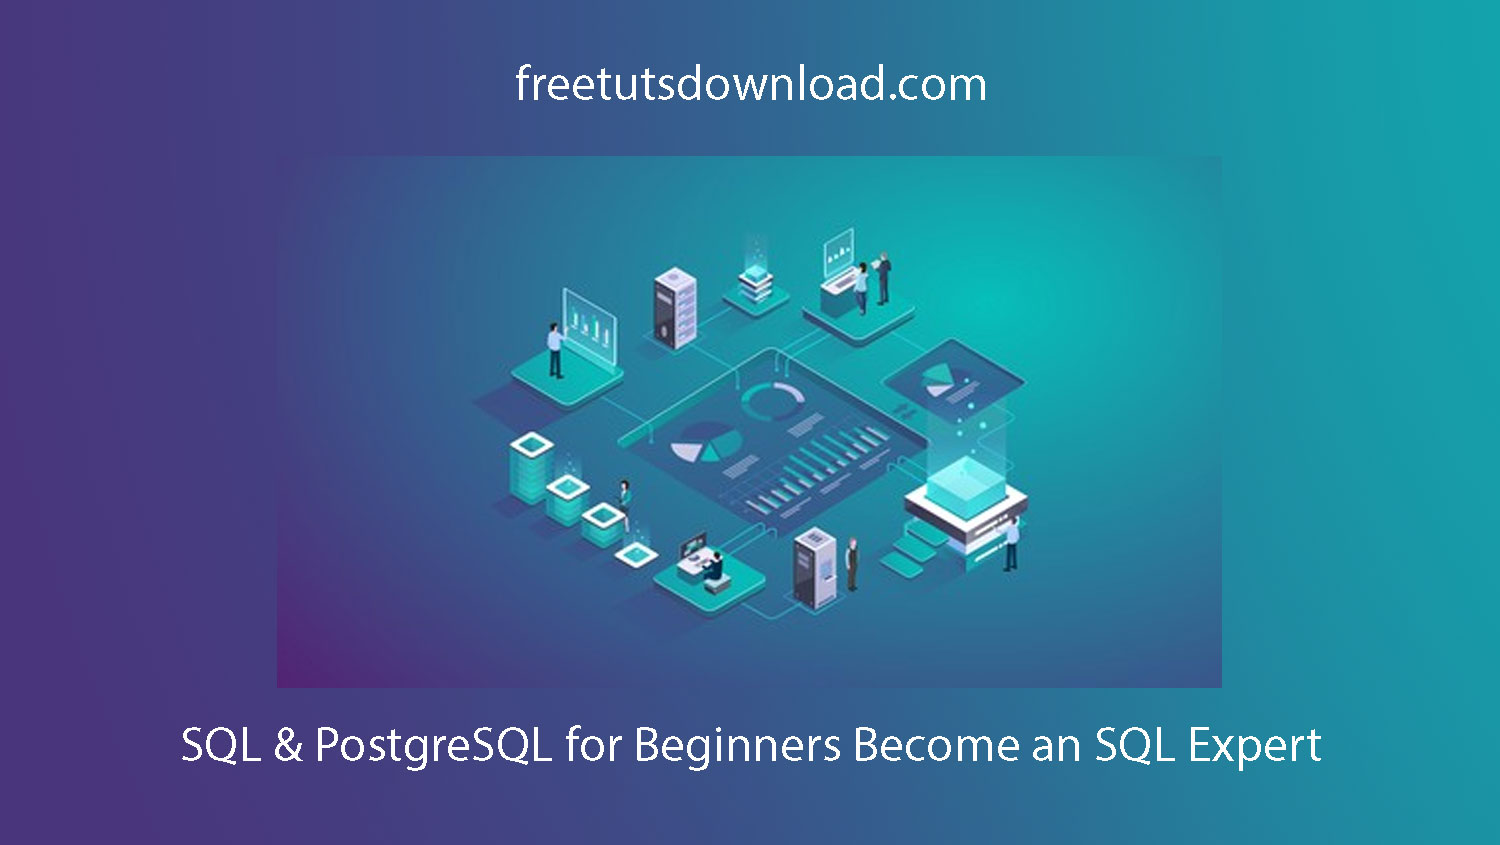 SQL & PostgreSQL for Beginners Become an SQL Expert